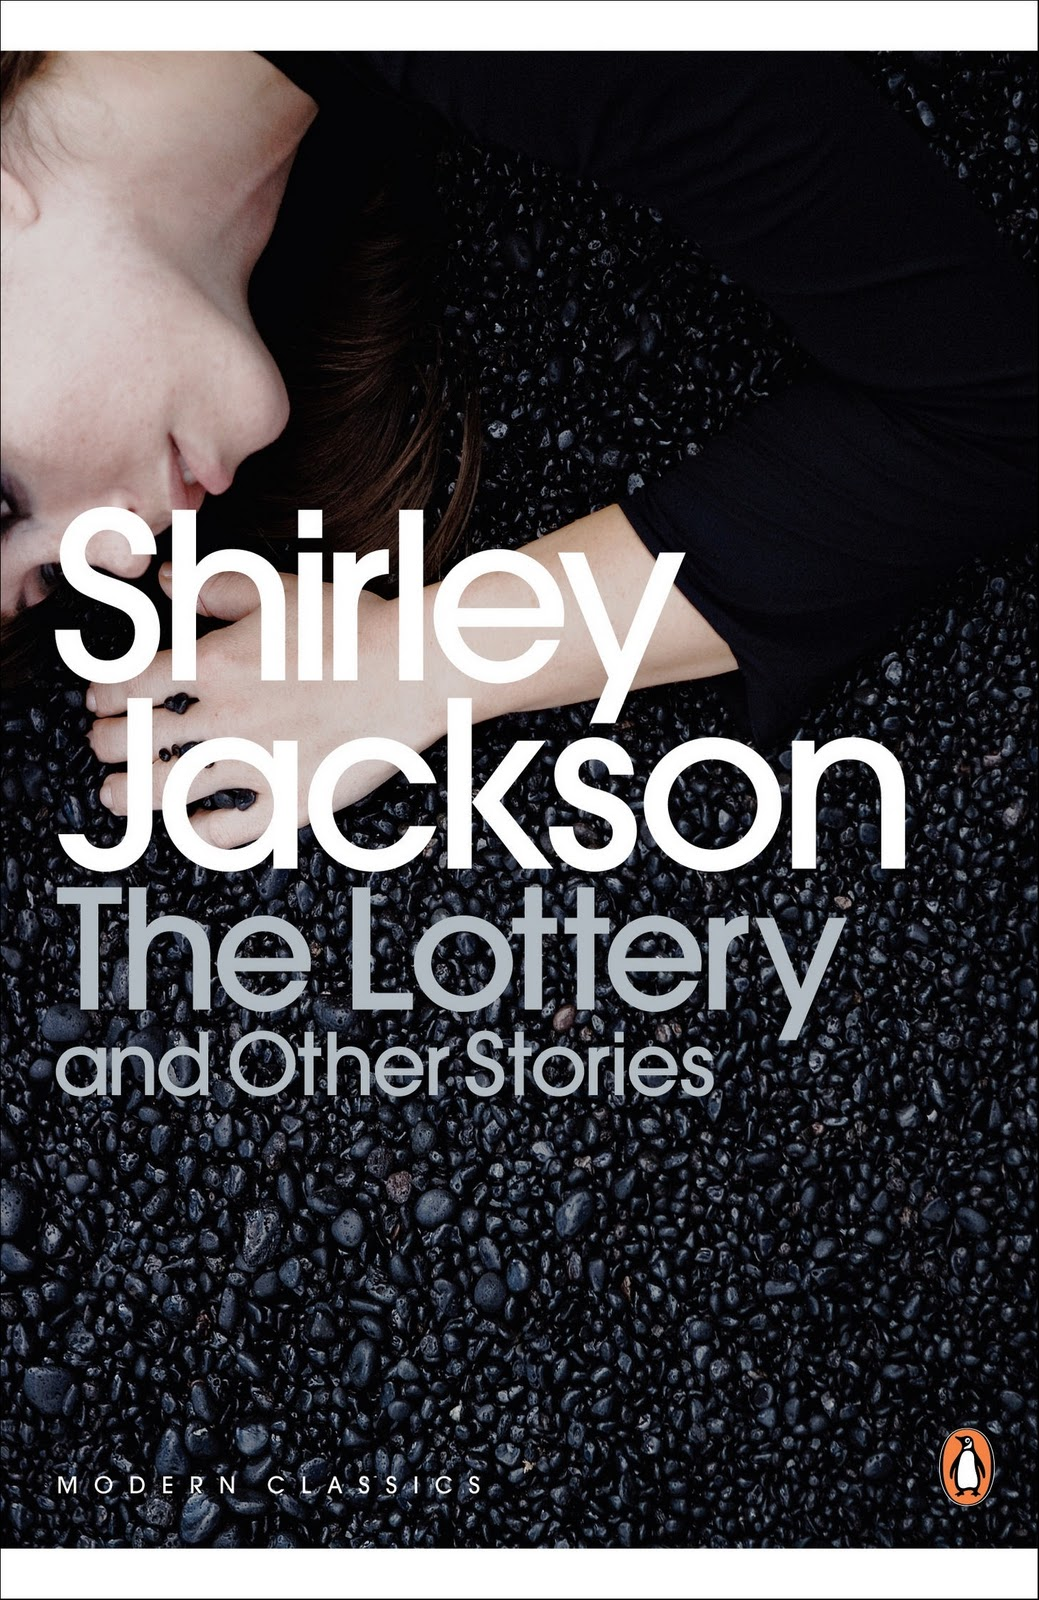 Essay On The Lottery By Shirley Jackson The Lottery And Other Stories Essay On The Lottery By Shirley Jackson